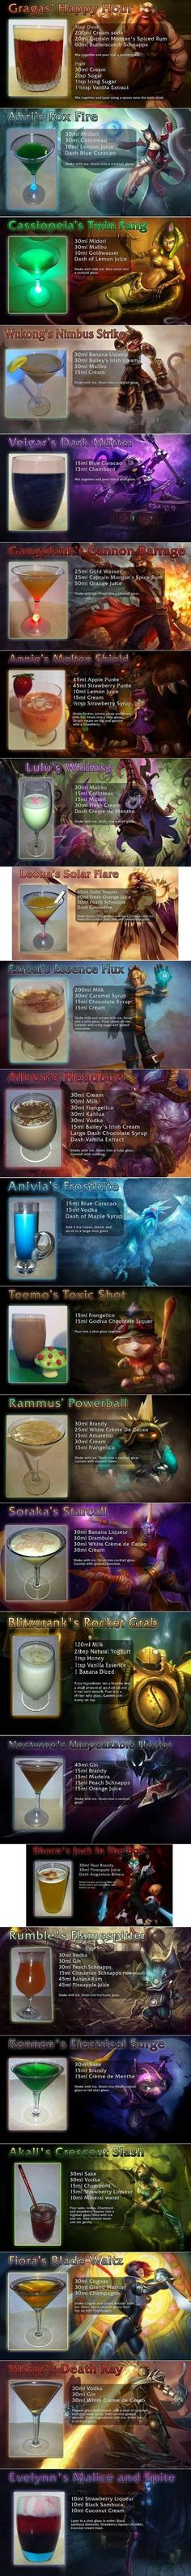 24 League Of Legends Drink Recipes | WeKnowMemes - have tried Gragas' Happy Hour - sweet but not sickly and highly potent! Woke with a tiny headache since it tasted like lolly water and I just downed it rather quickly - oops :)